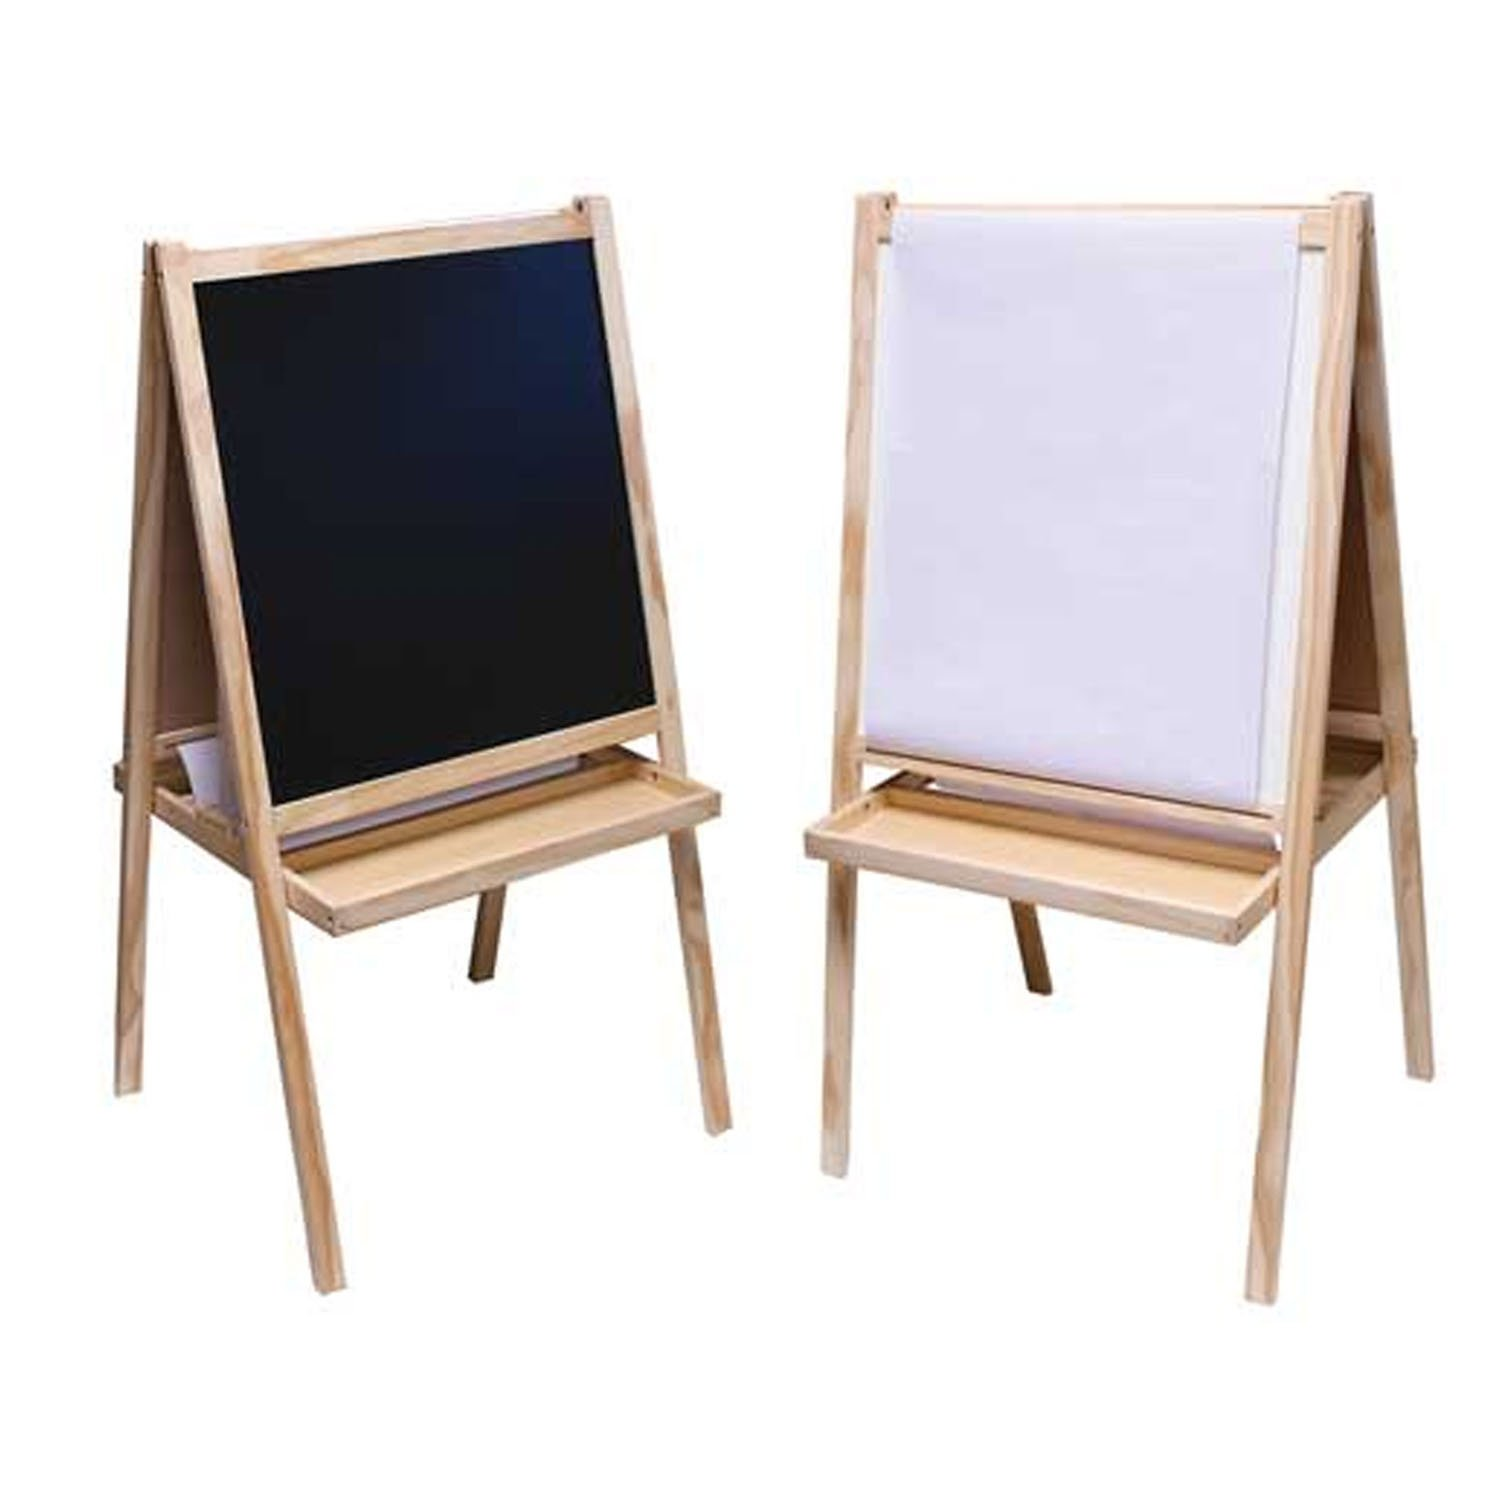 Art Alternatives Young Artist Easel,Brown